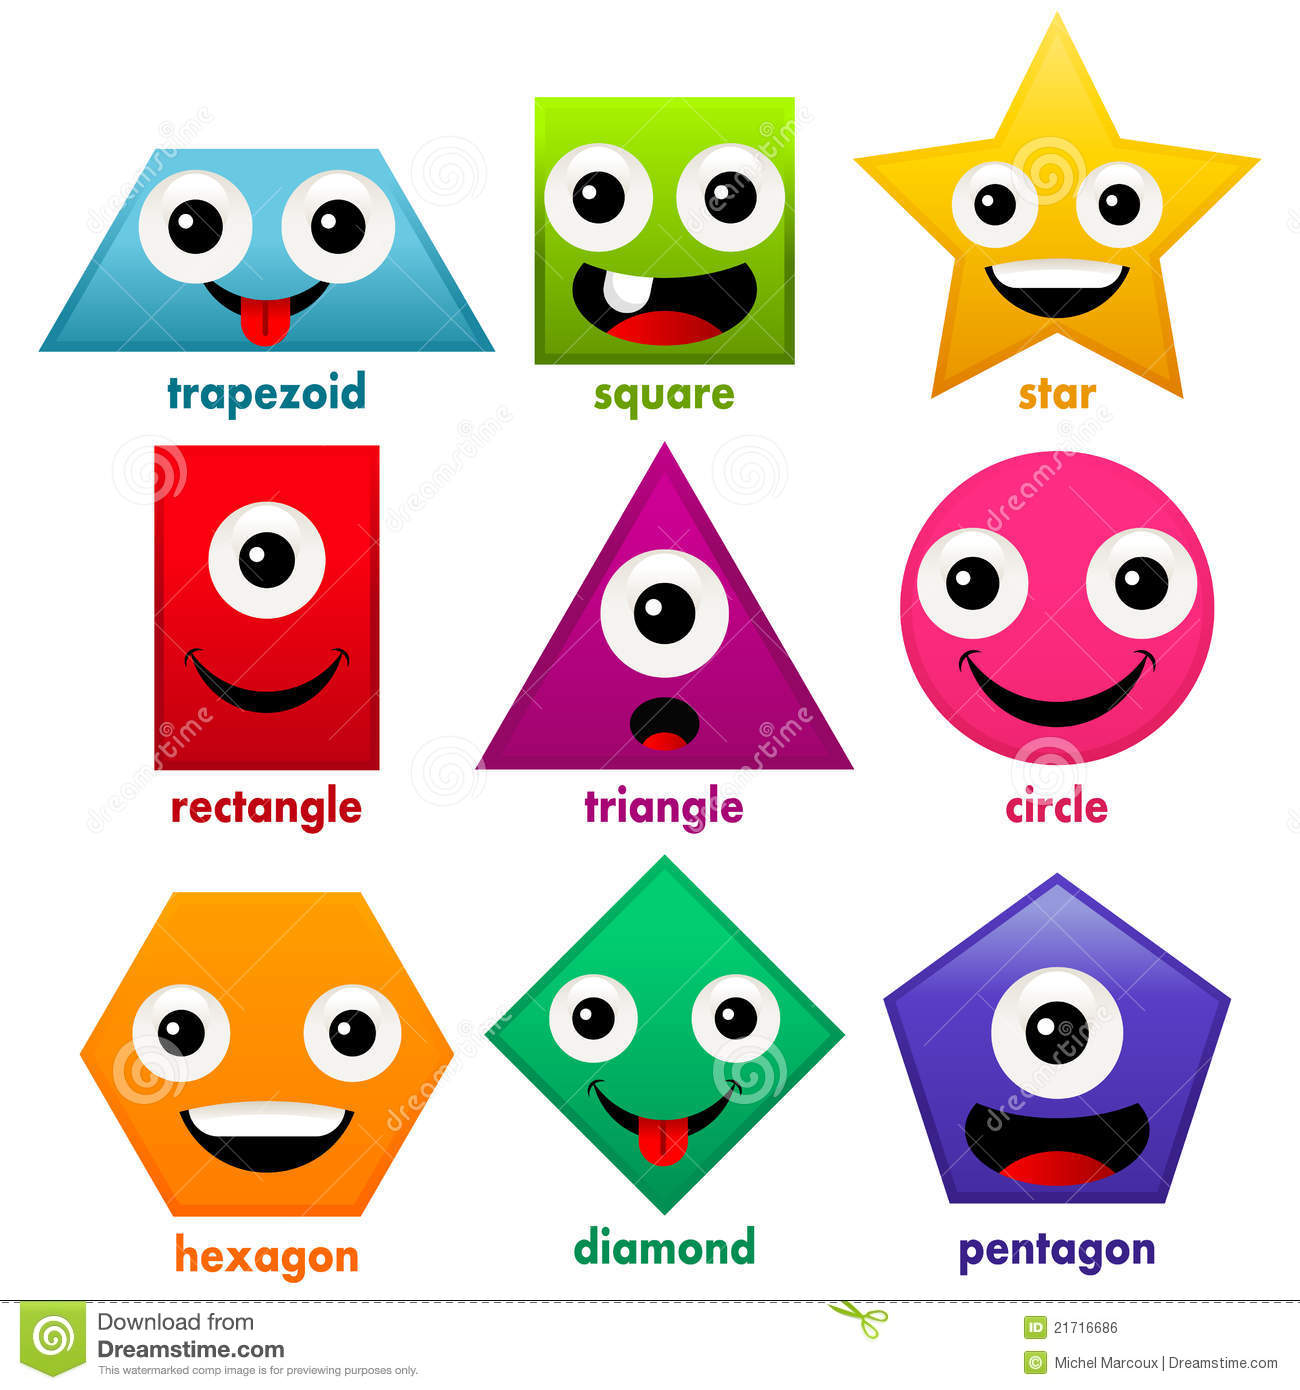 Shapes - Lessons - Tes Teach